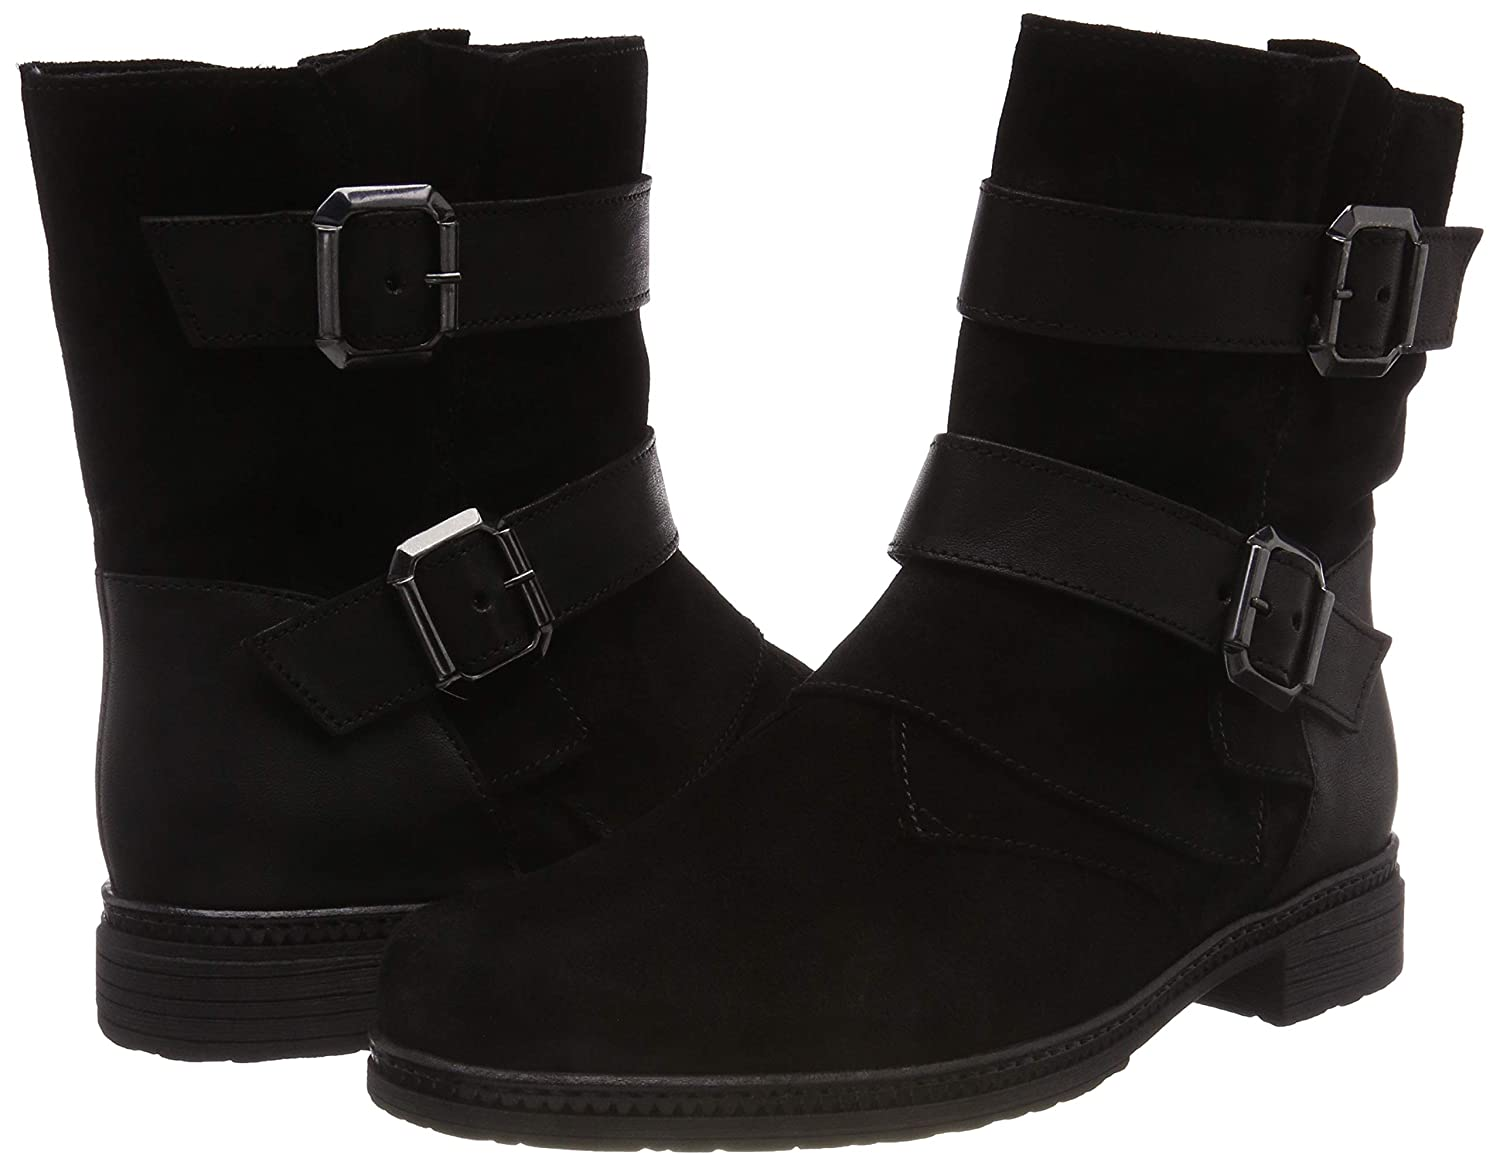 Gabor Shoes Casual, Botines Femme Femme Femme - B07CMMX3WM - Bottes et bottines 048e95